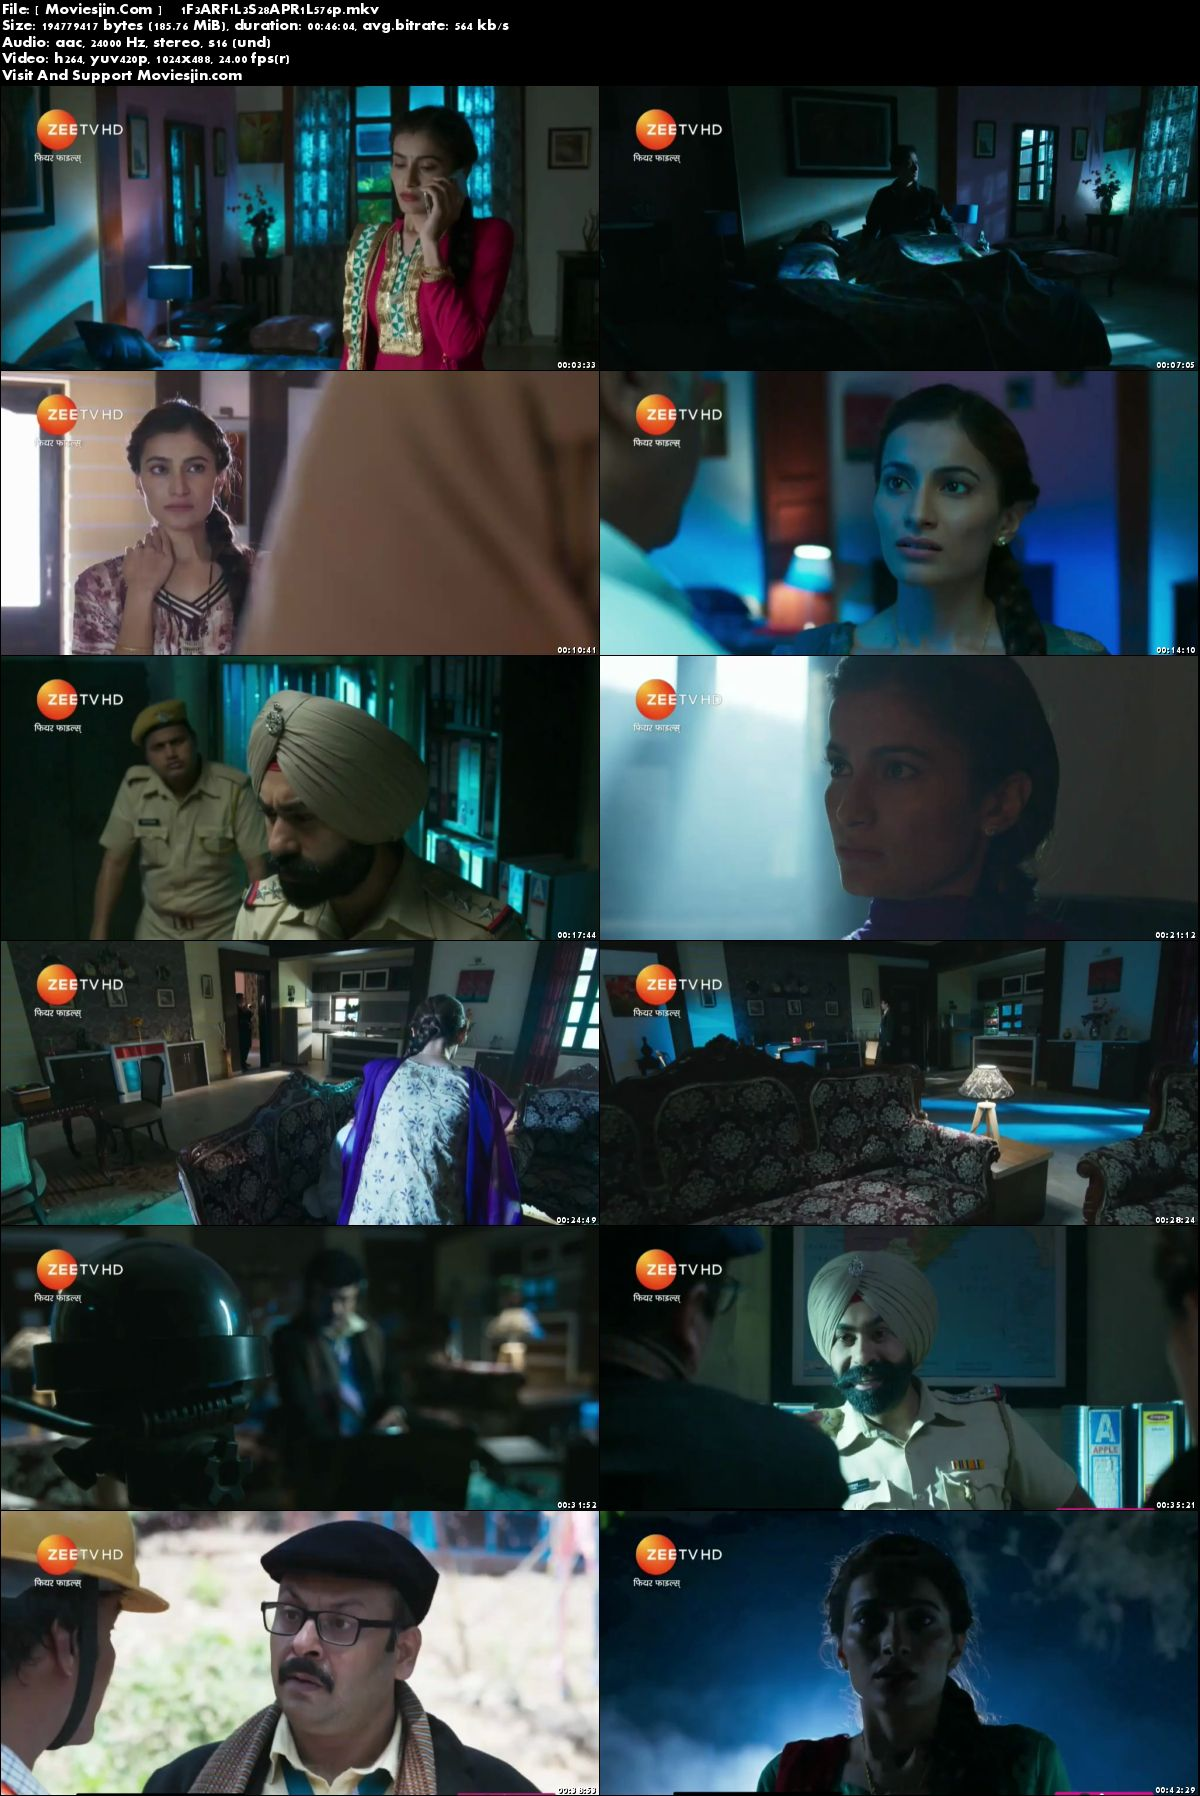 Watch Online Fear Files Season 3 28th April 2018 480p TvRip 190MB Full Movie Download mkvcage